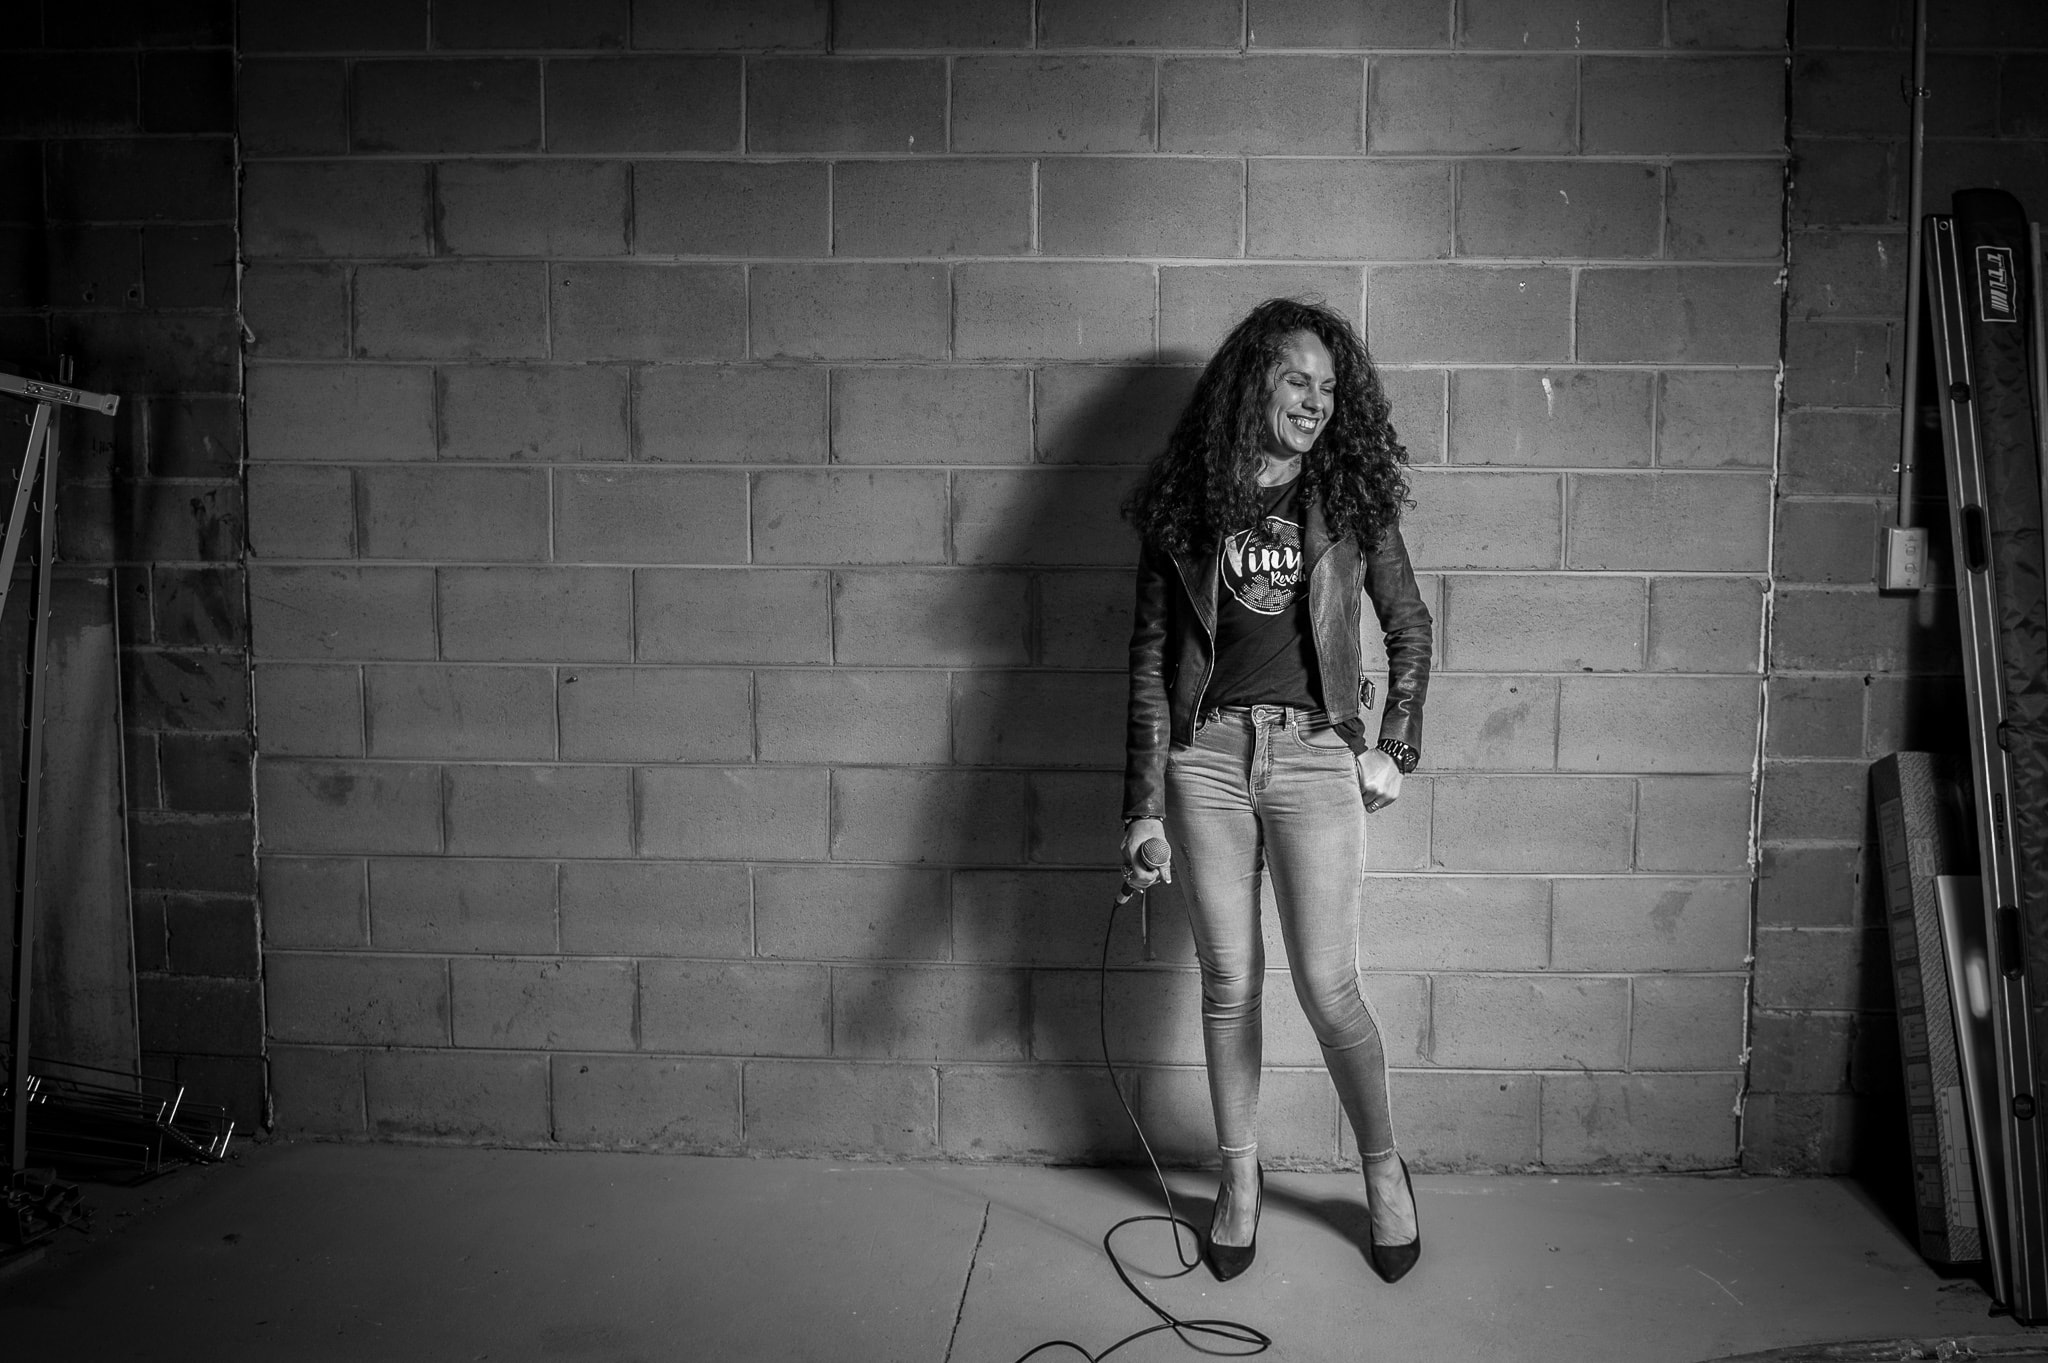 A female singer smiles with a microphone in front of a cinderblock wall